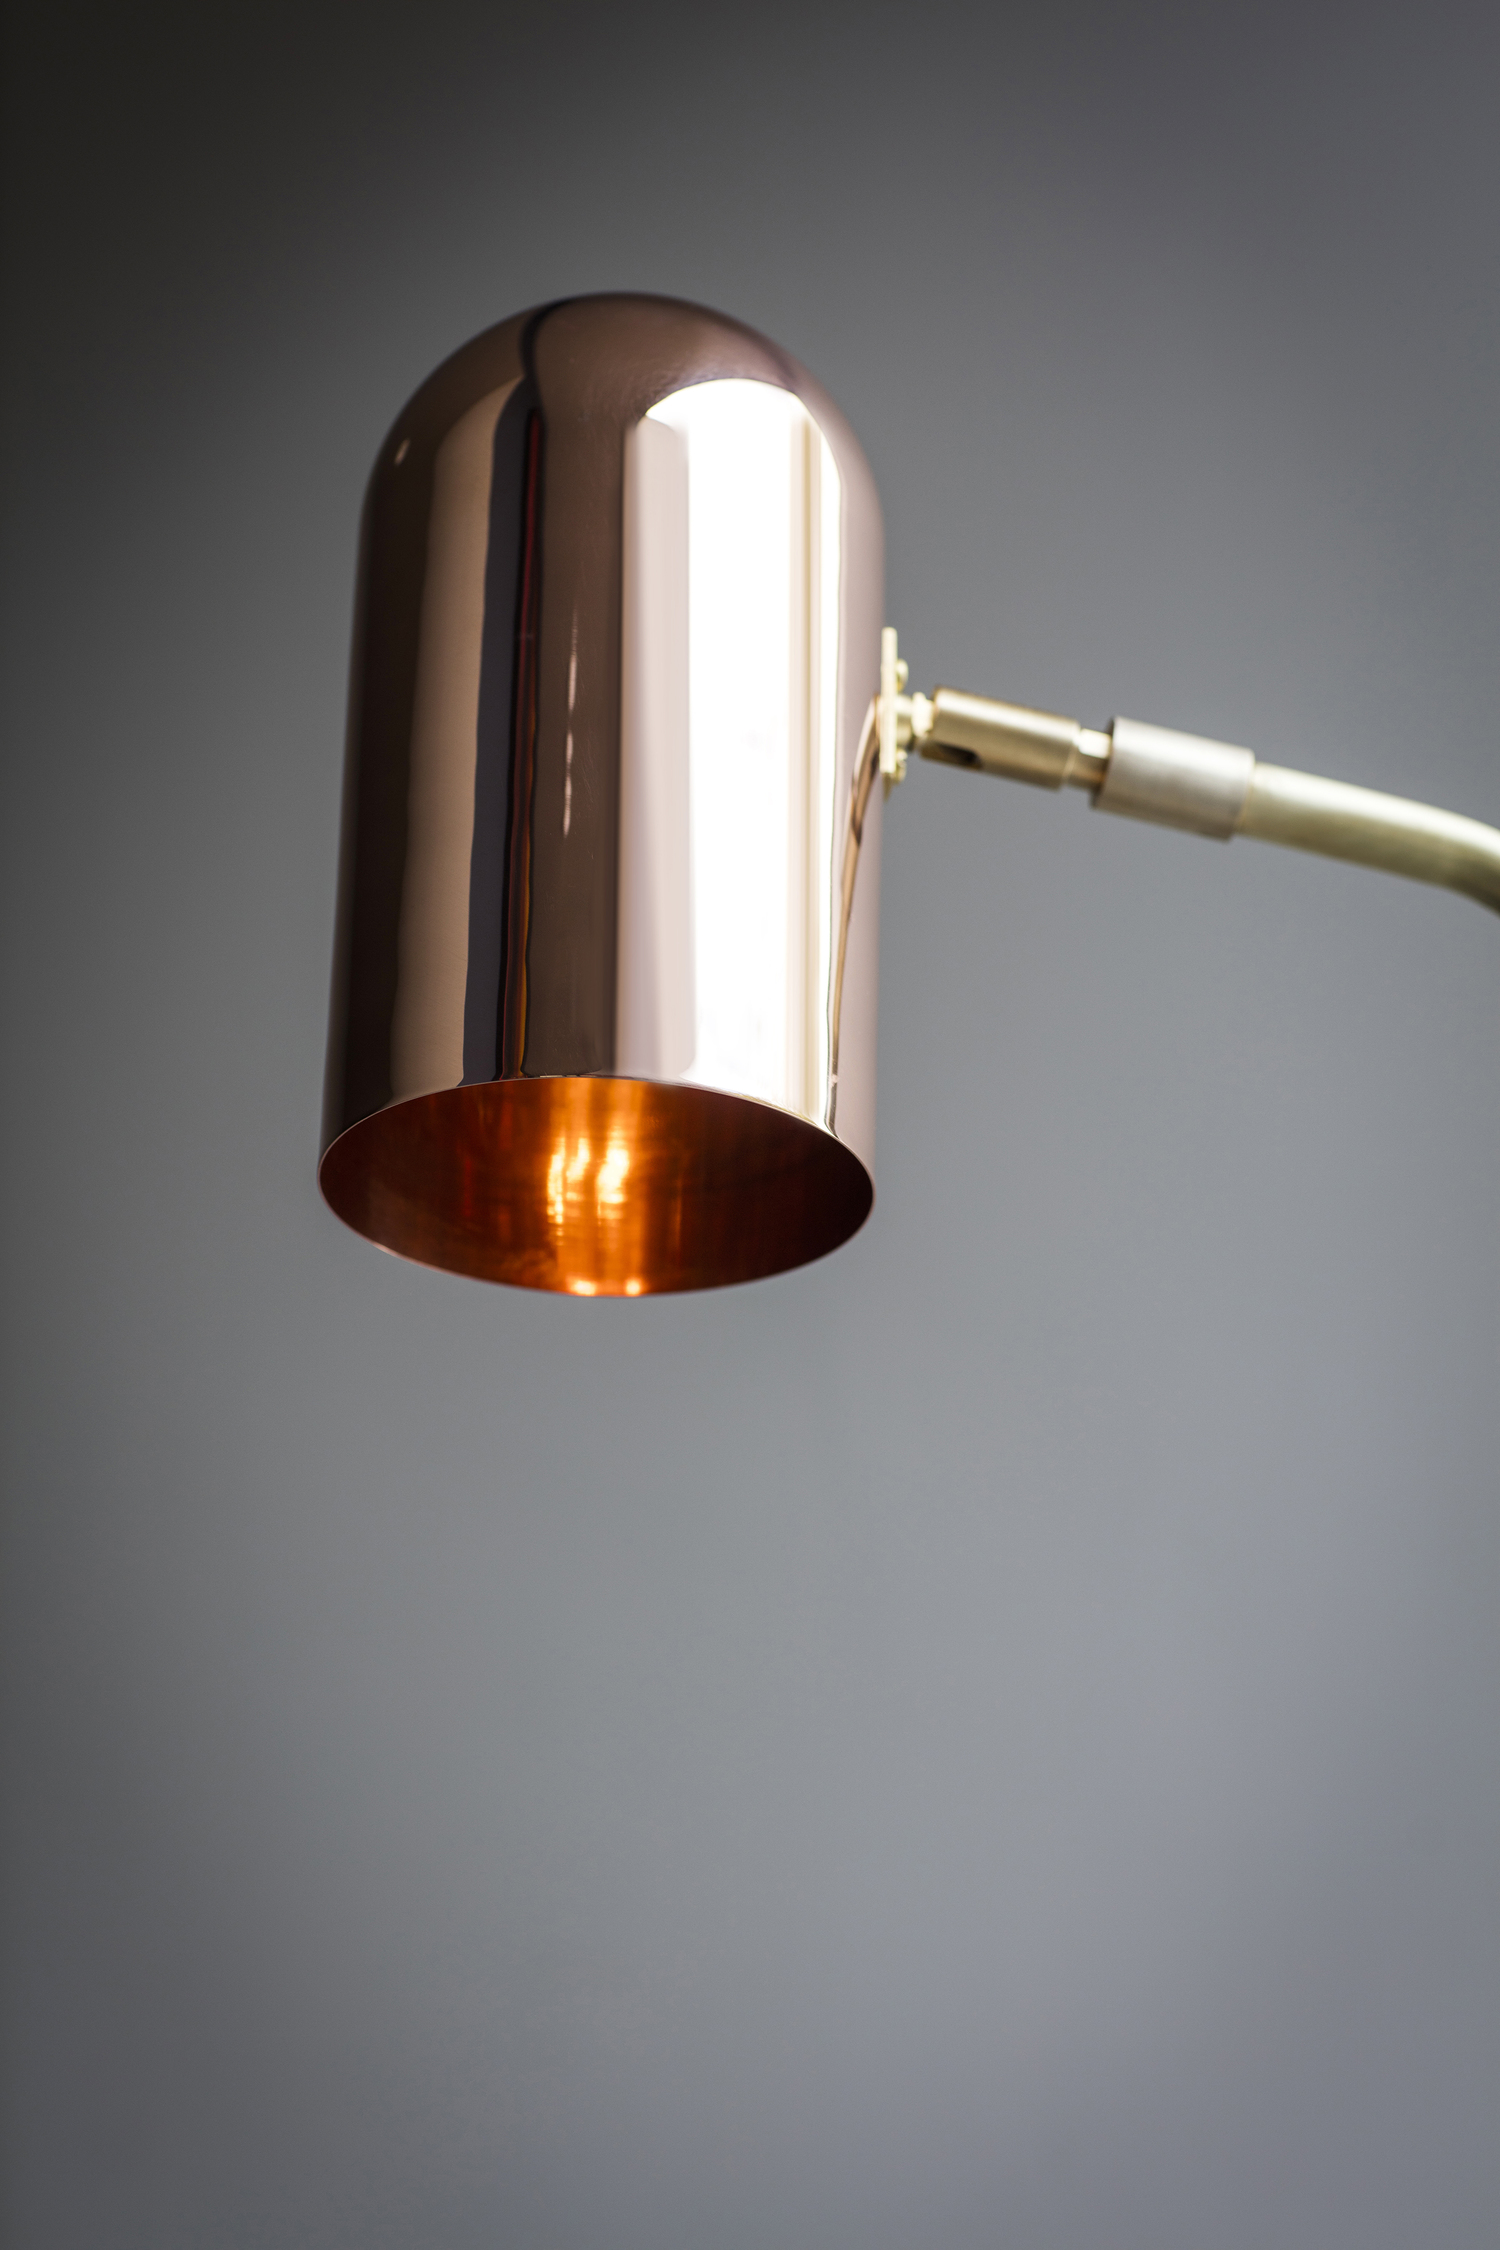 Stasis Table Lamp - <p><span>With its copper shade and linear brass arm, the Stasis Table Lamp makes a bold statement. The solid brass base features a copper insert for an unexpected twist. The angle of both the arm and shade can be adjusted.</span></p>  | Matter of Stuff